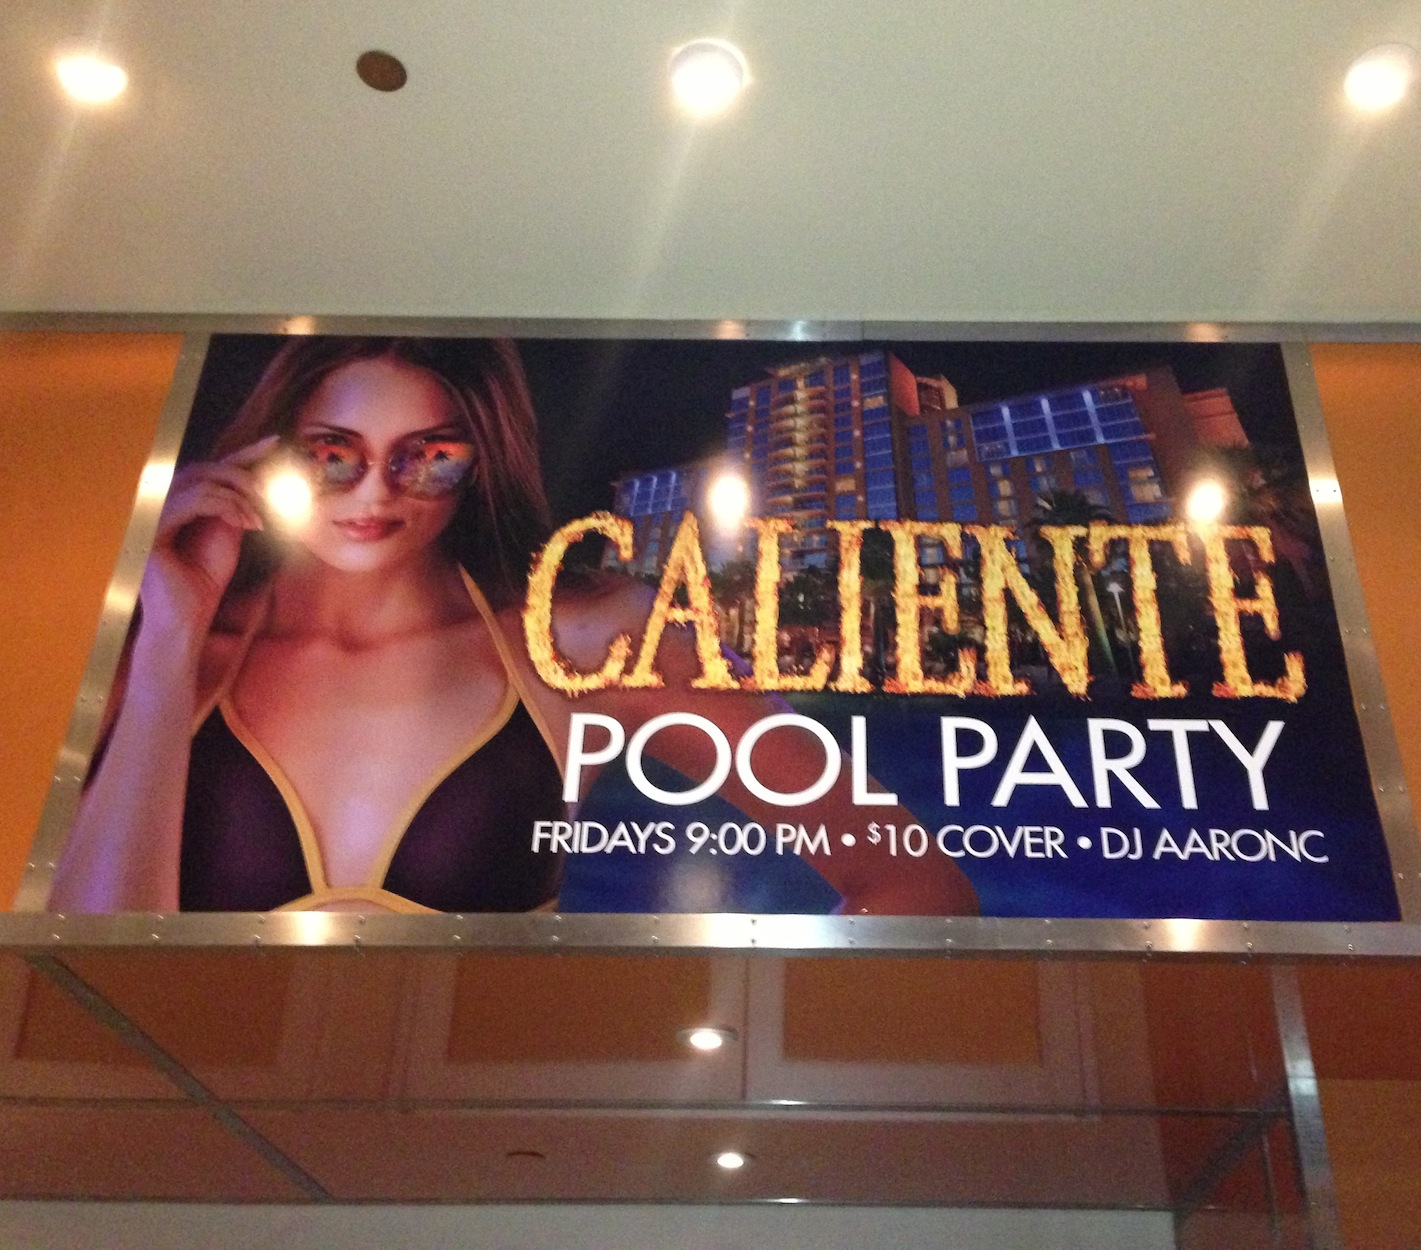 http://djaaronc.com/opening-night-for-caliente-pool-parties/